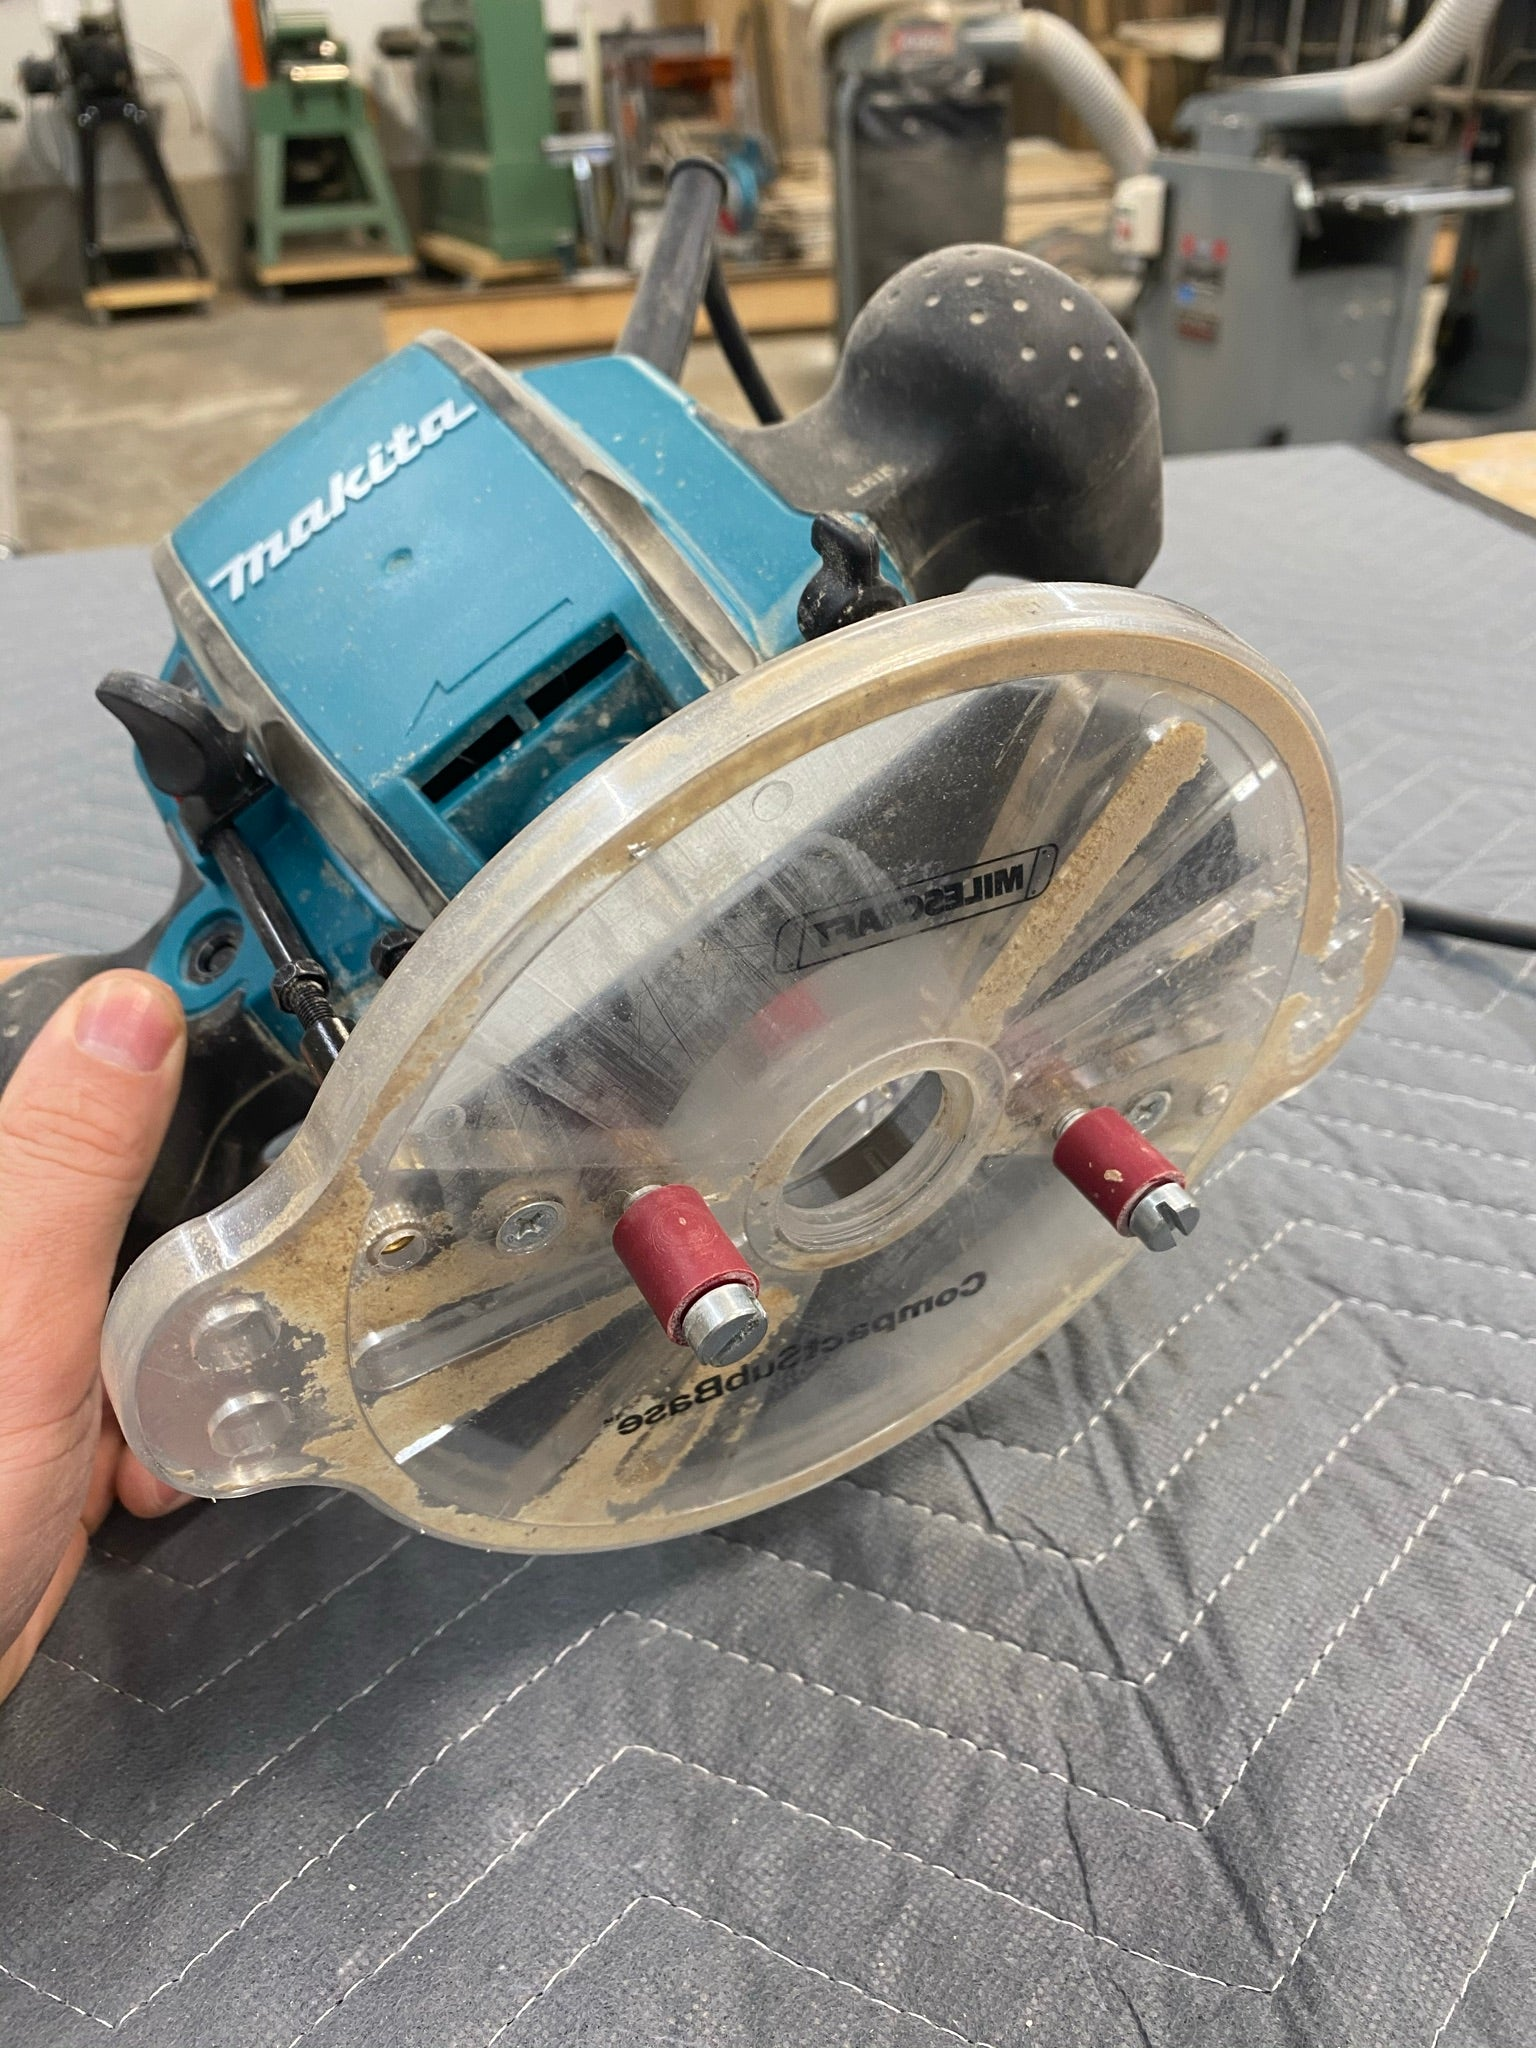 Makita Plunge Router with Milescraft Mortising pins